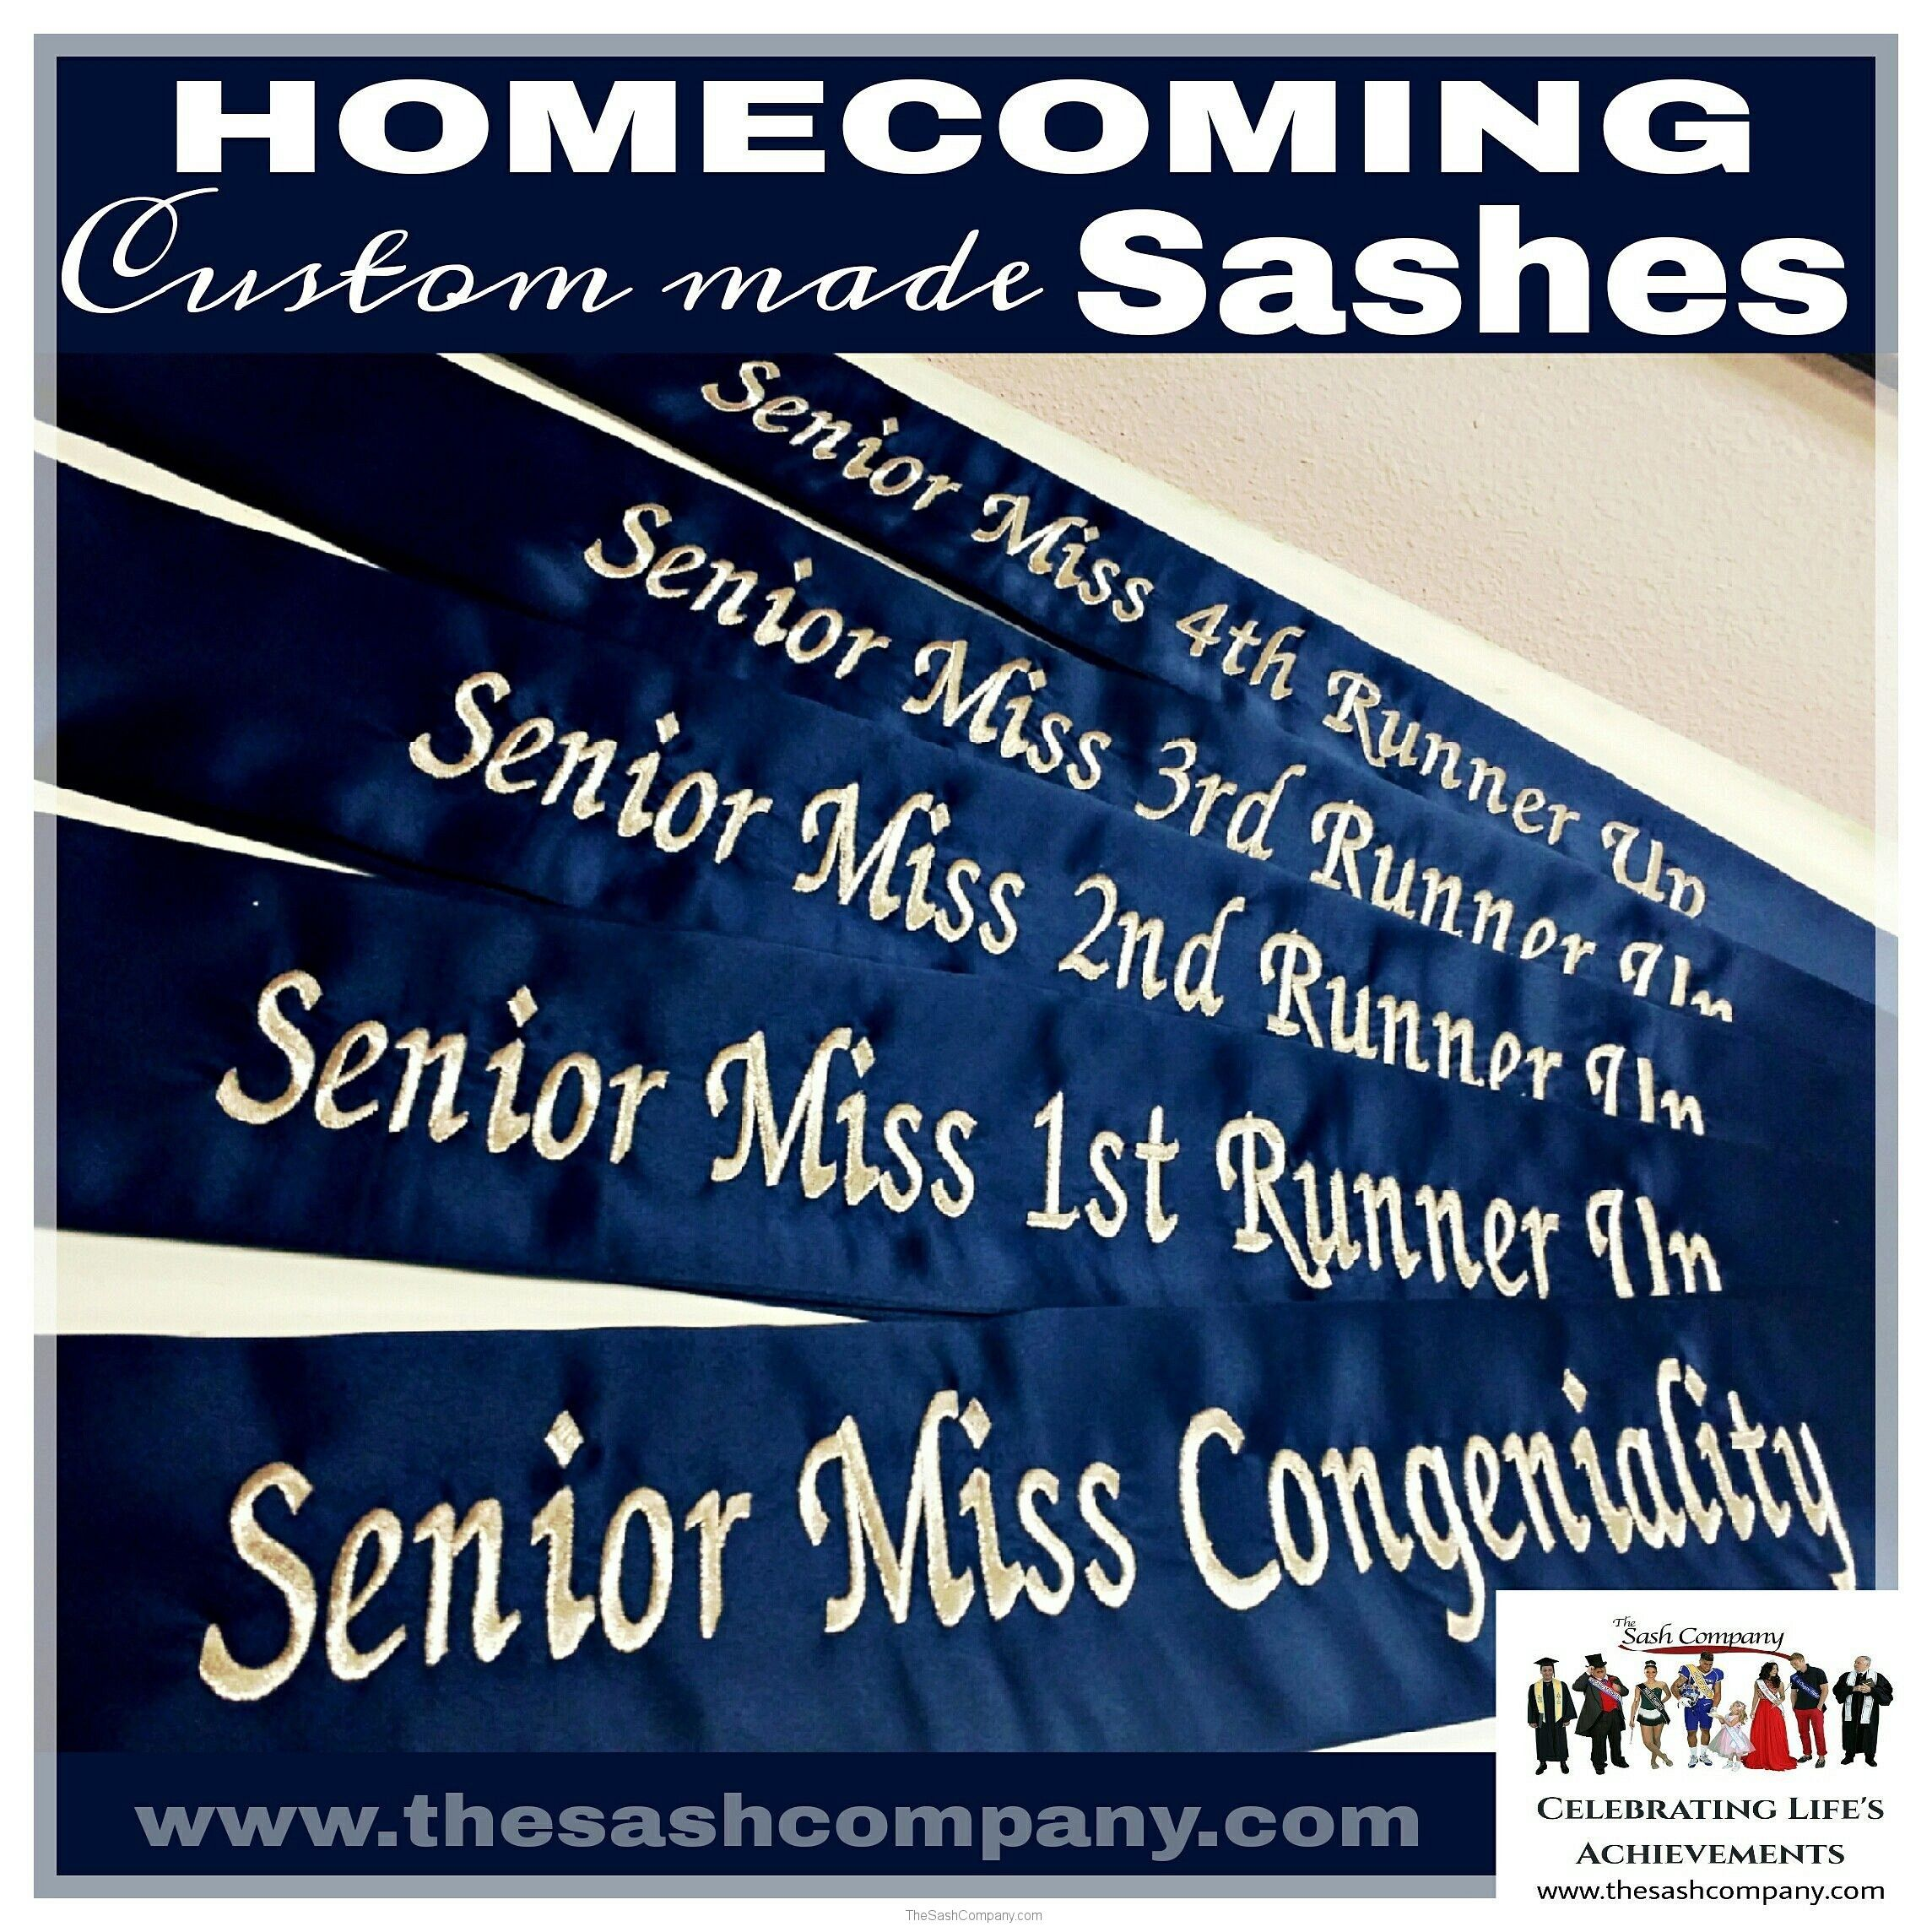 Homecoming Custom Made Sashes